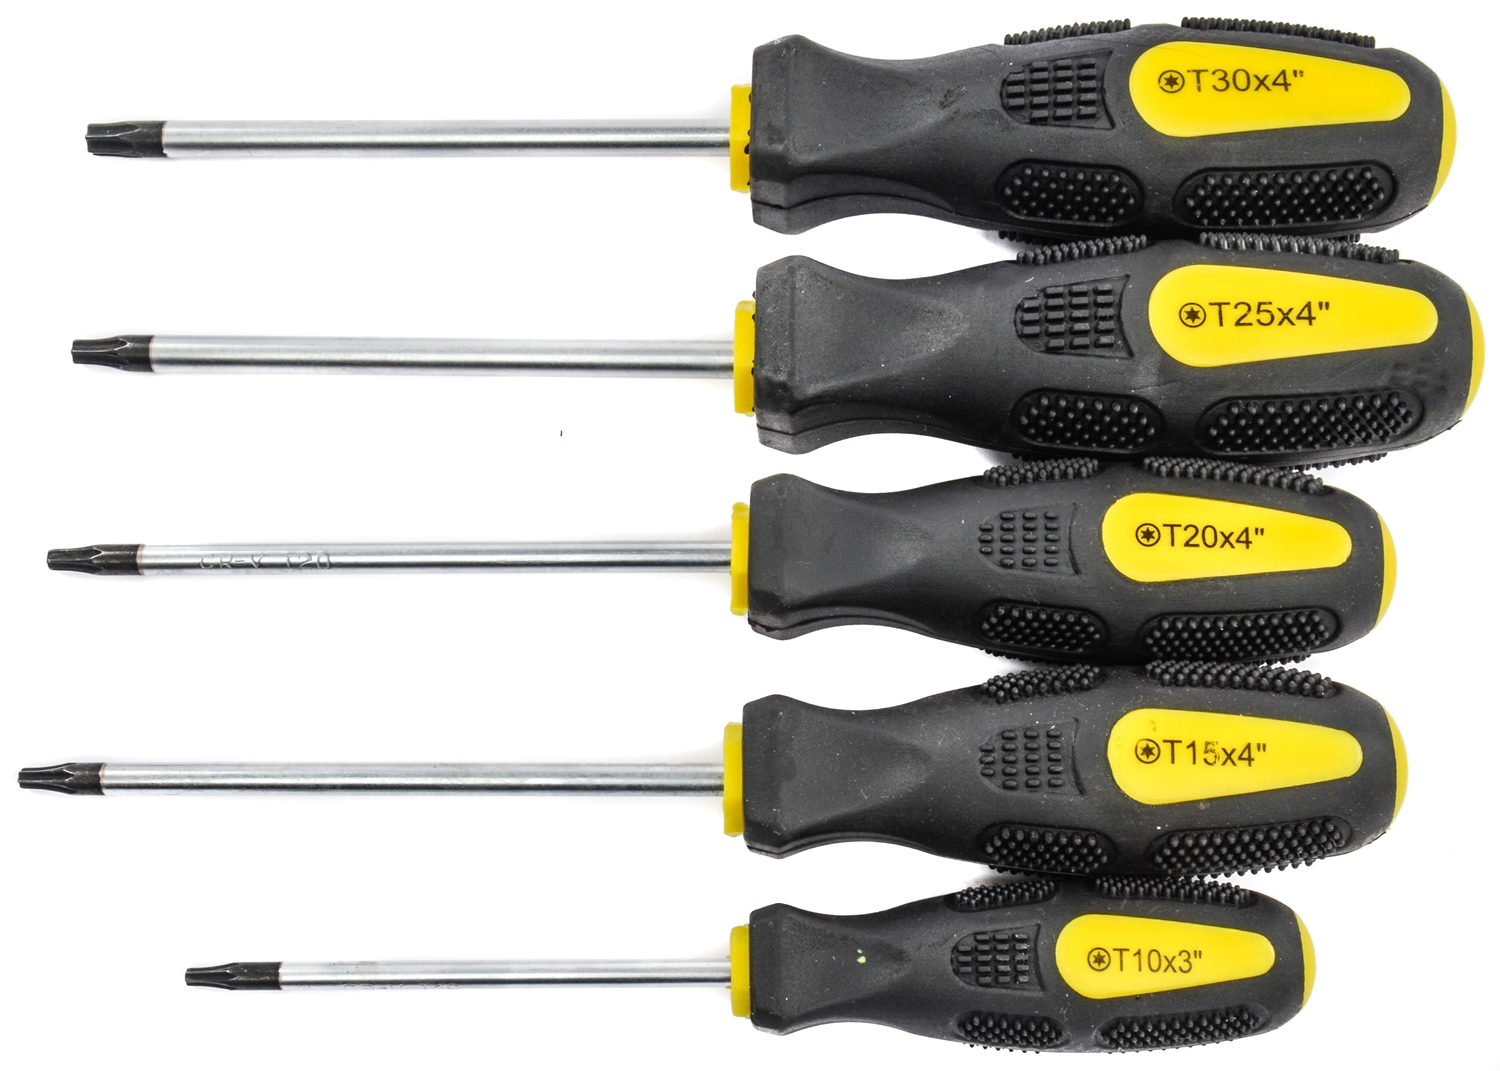 Set of 8 Cushion Grip screwdrivers - Professional Screwdriver Set Energy Efficiency Class A includes 4 flat-head screwdrivers and 4 Phillips screwdrivers